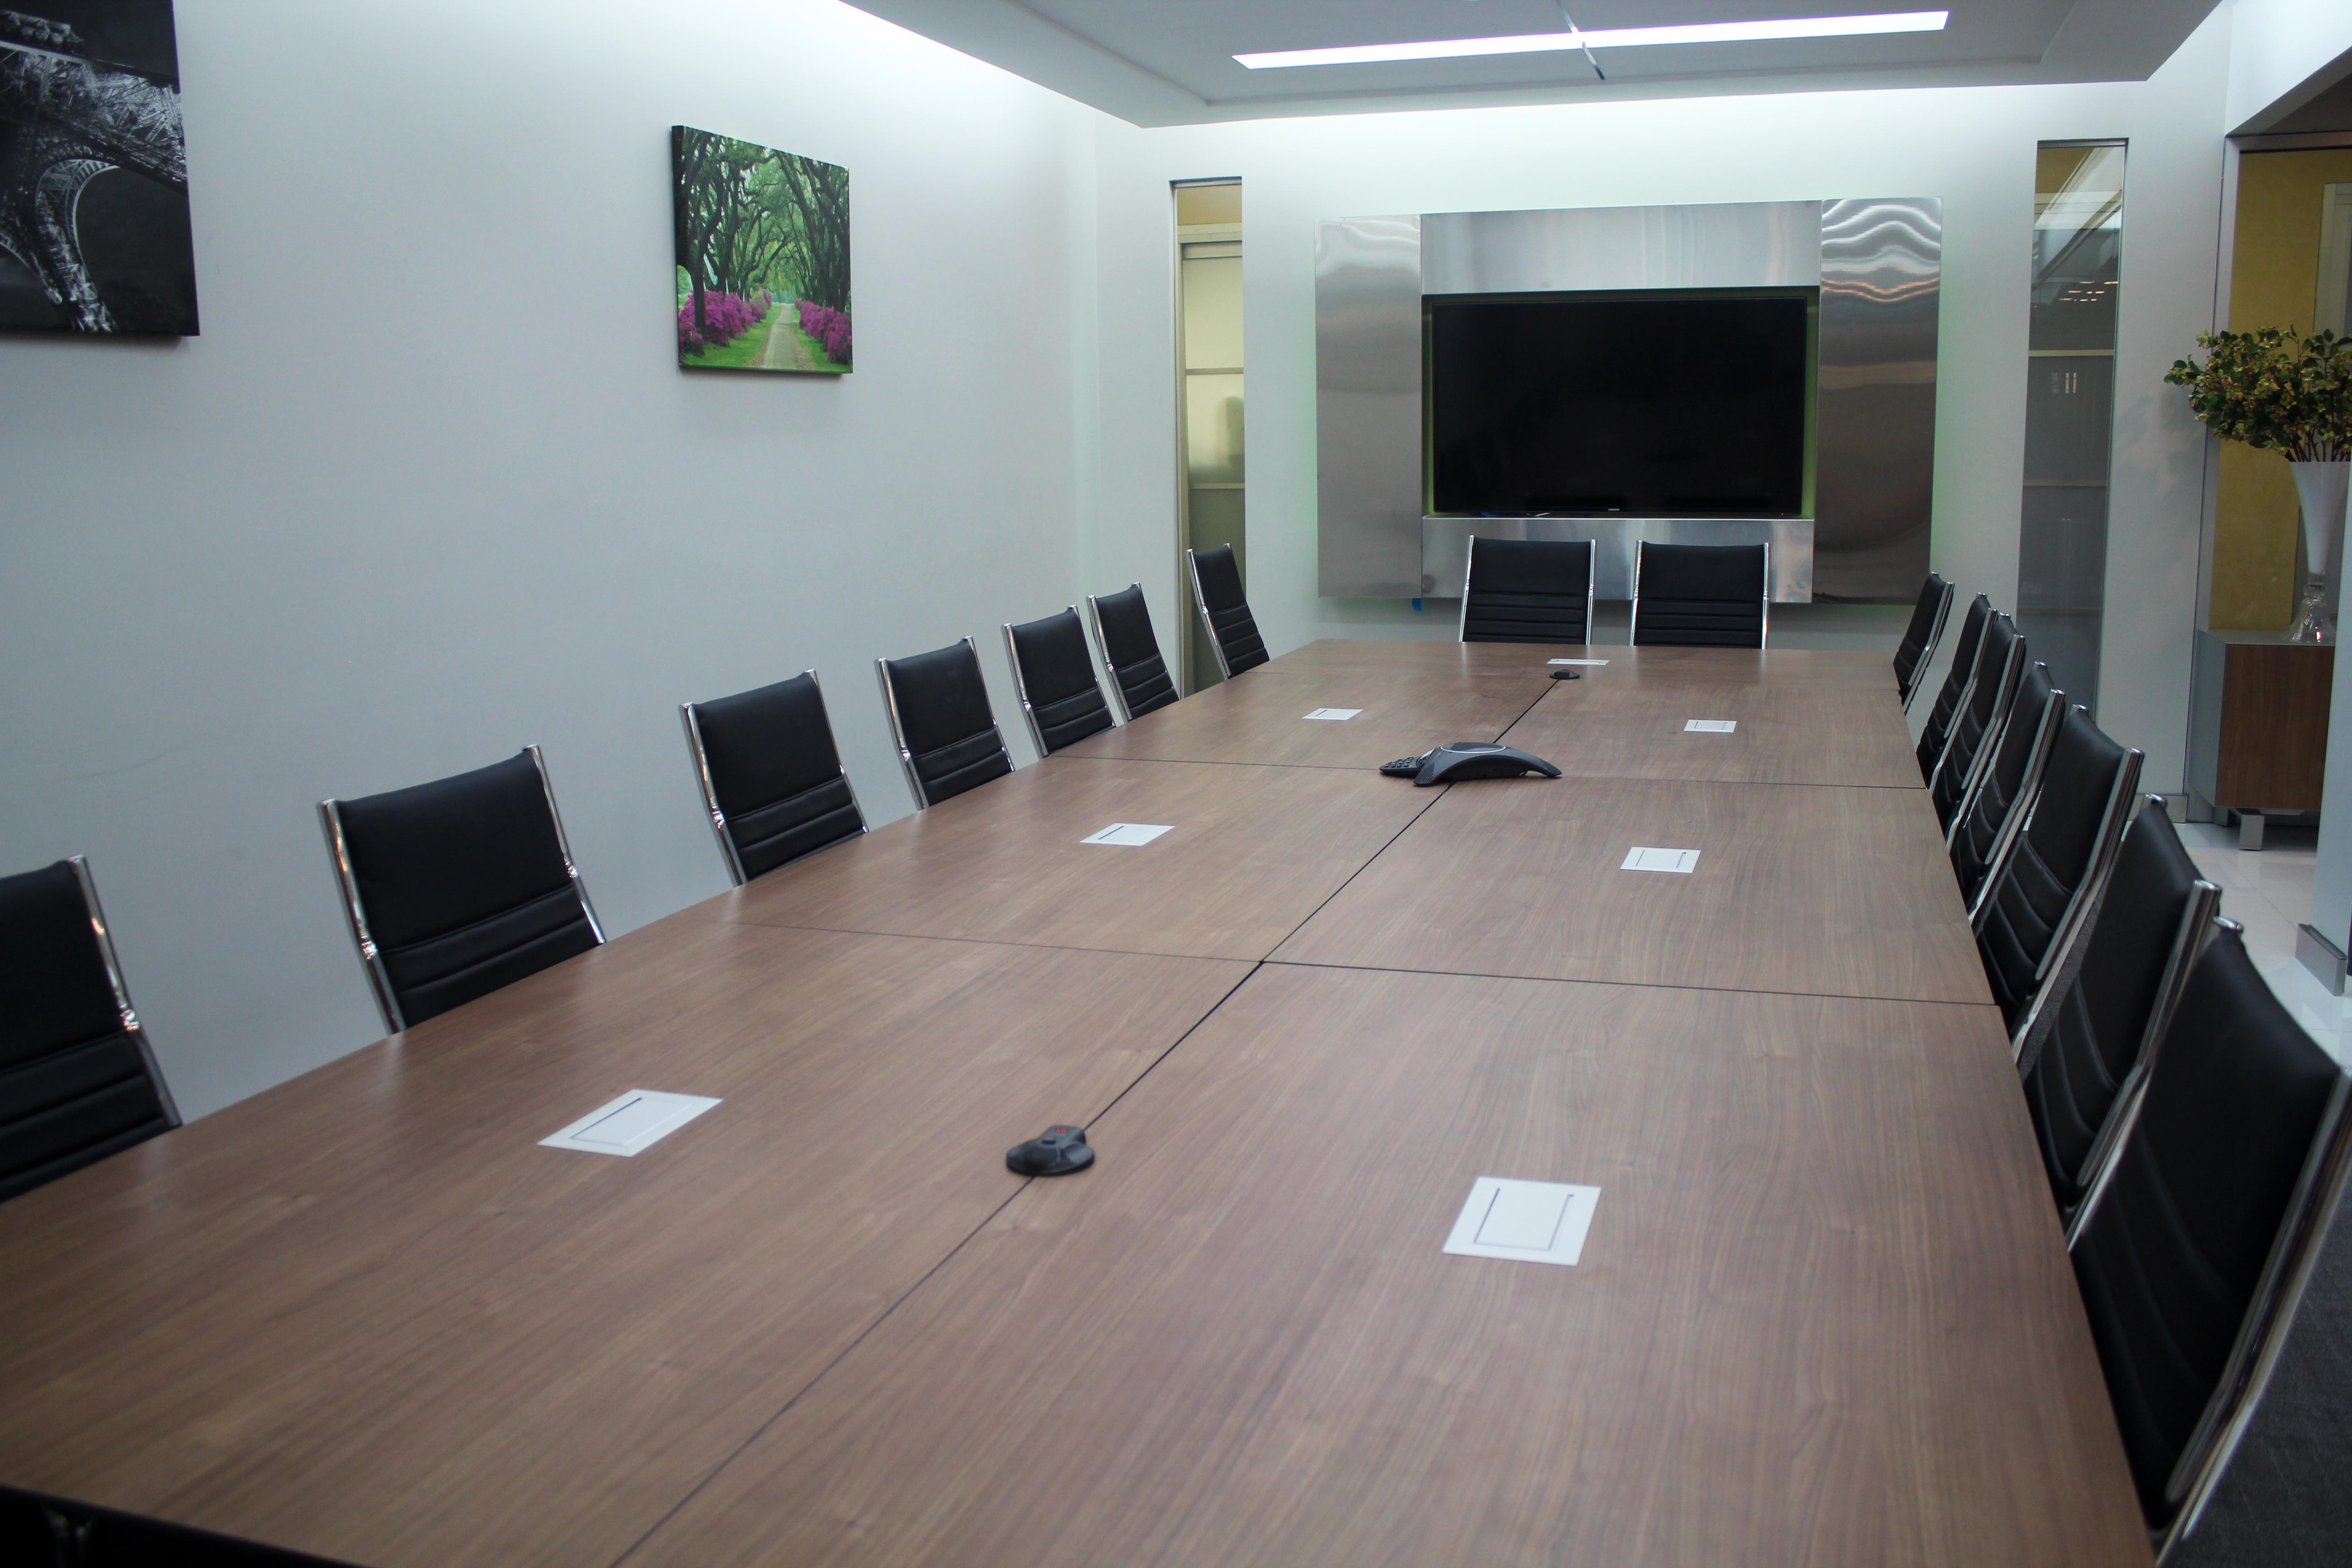 conference room rental – Page 2 – Entrepreneurship & Small ...